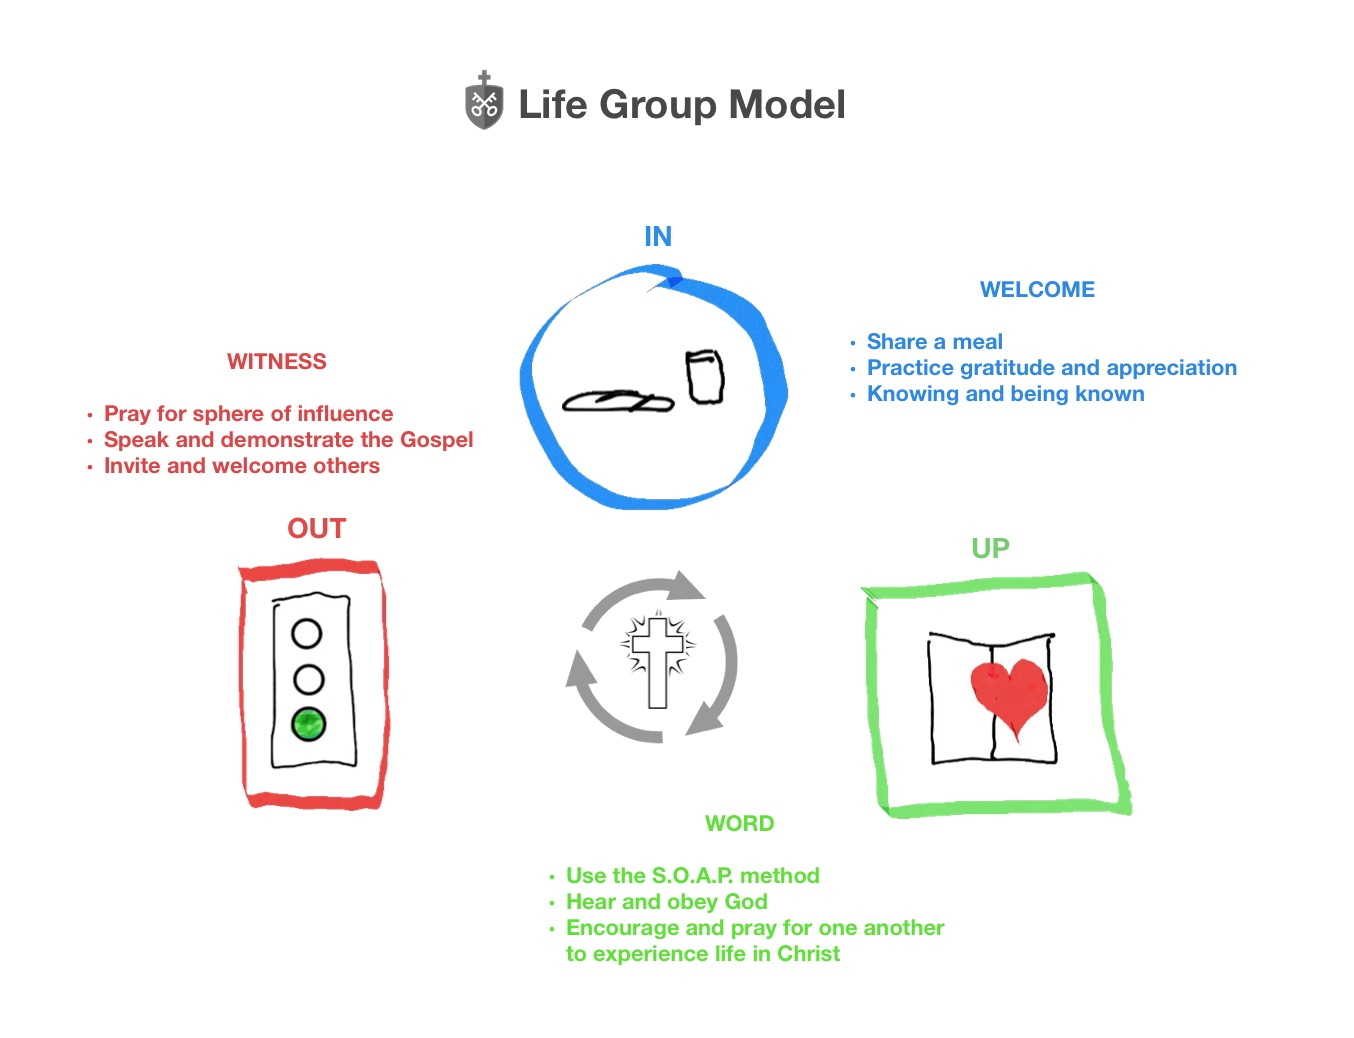 Life Group Model - diagram